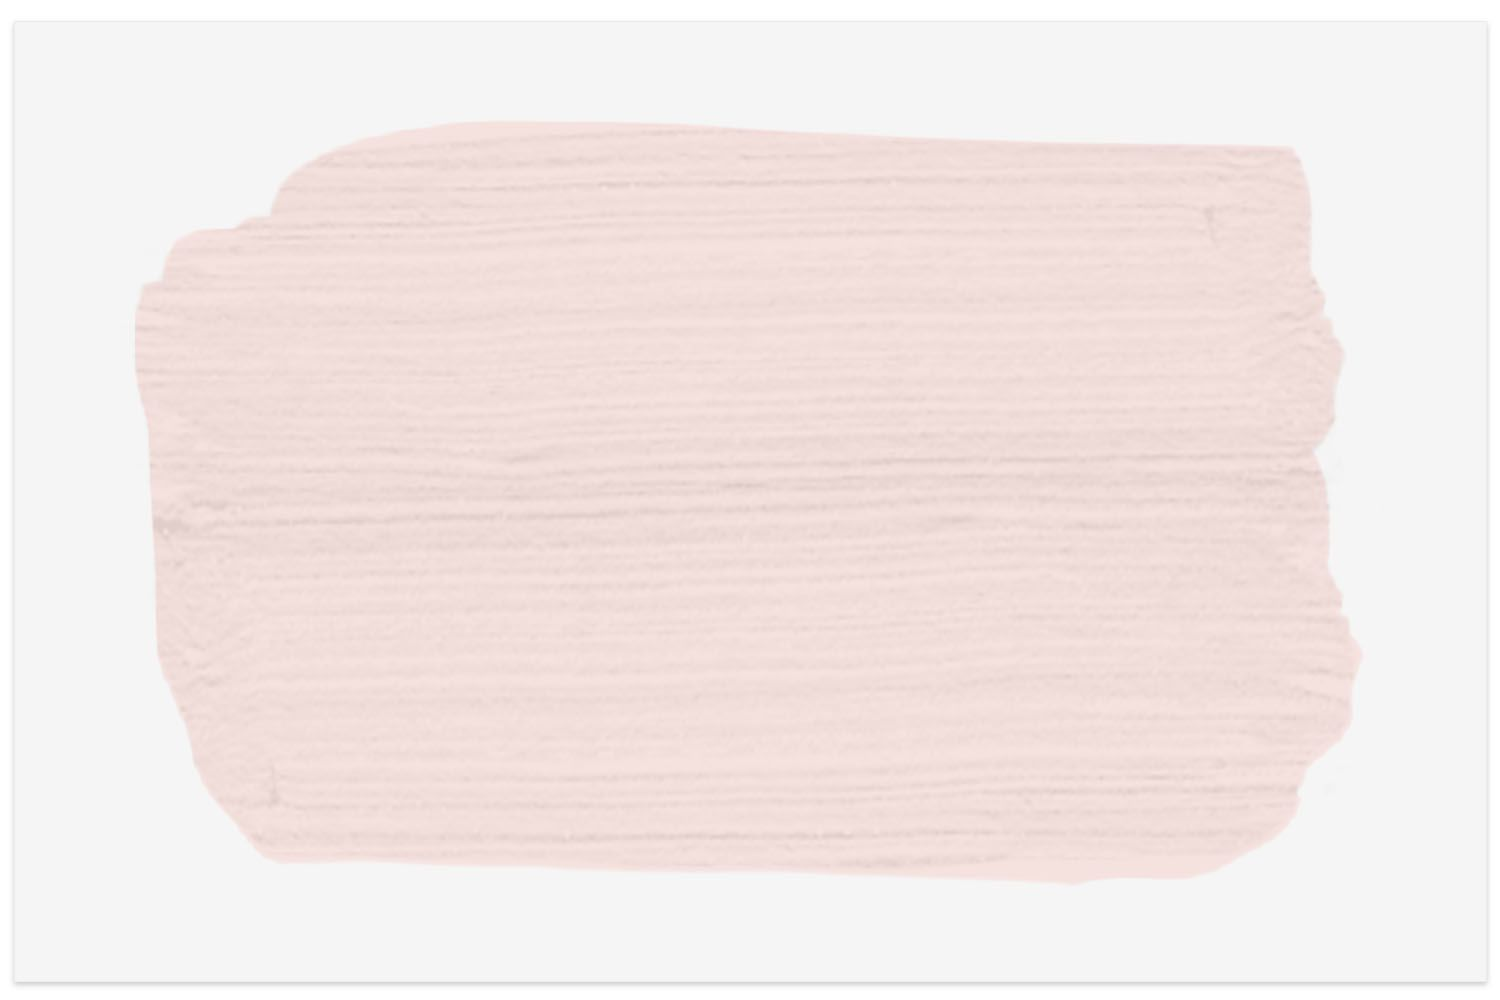 Farrow and Ball Calamine paint swatch